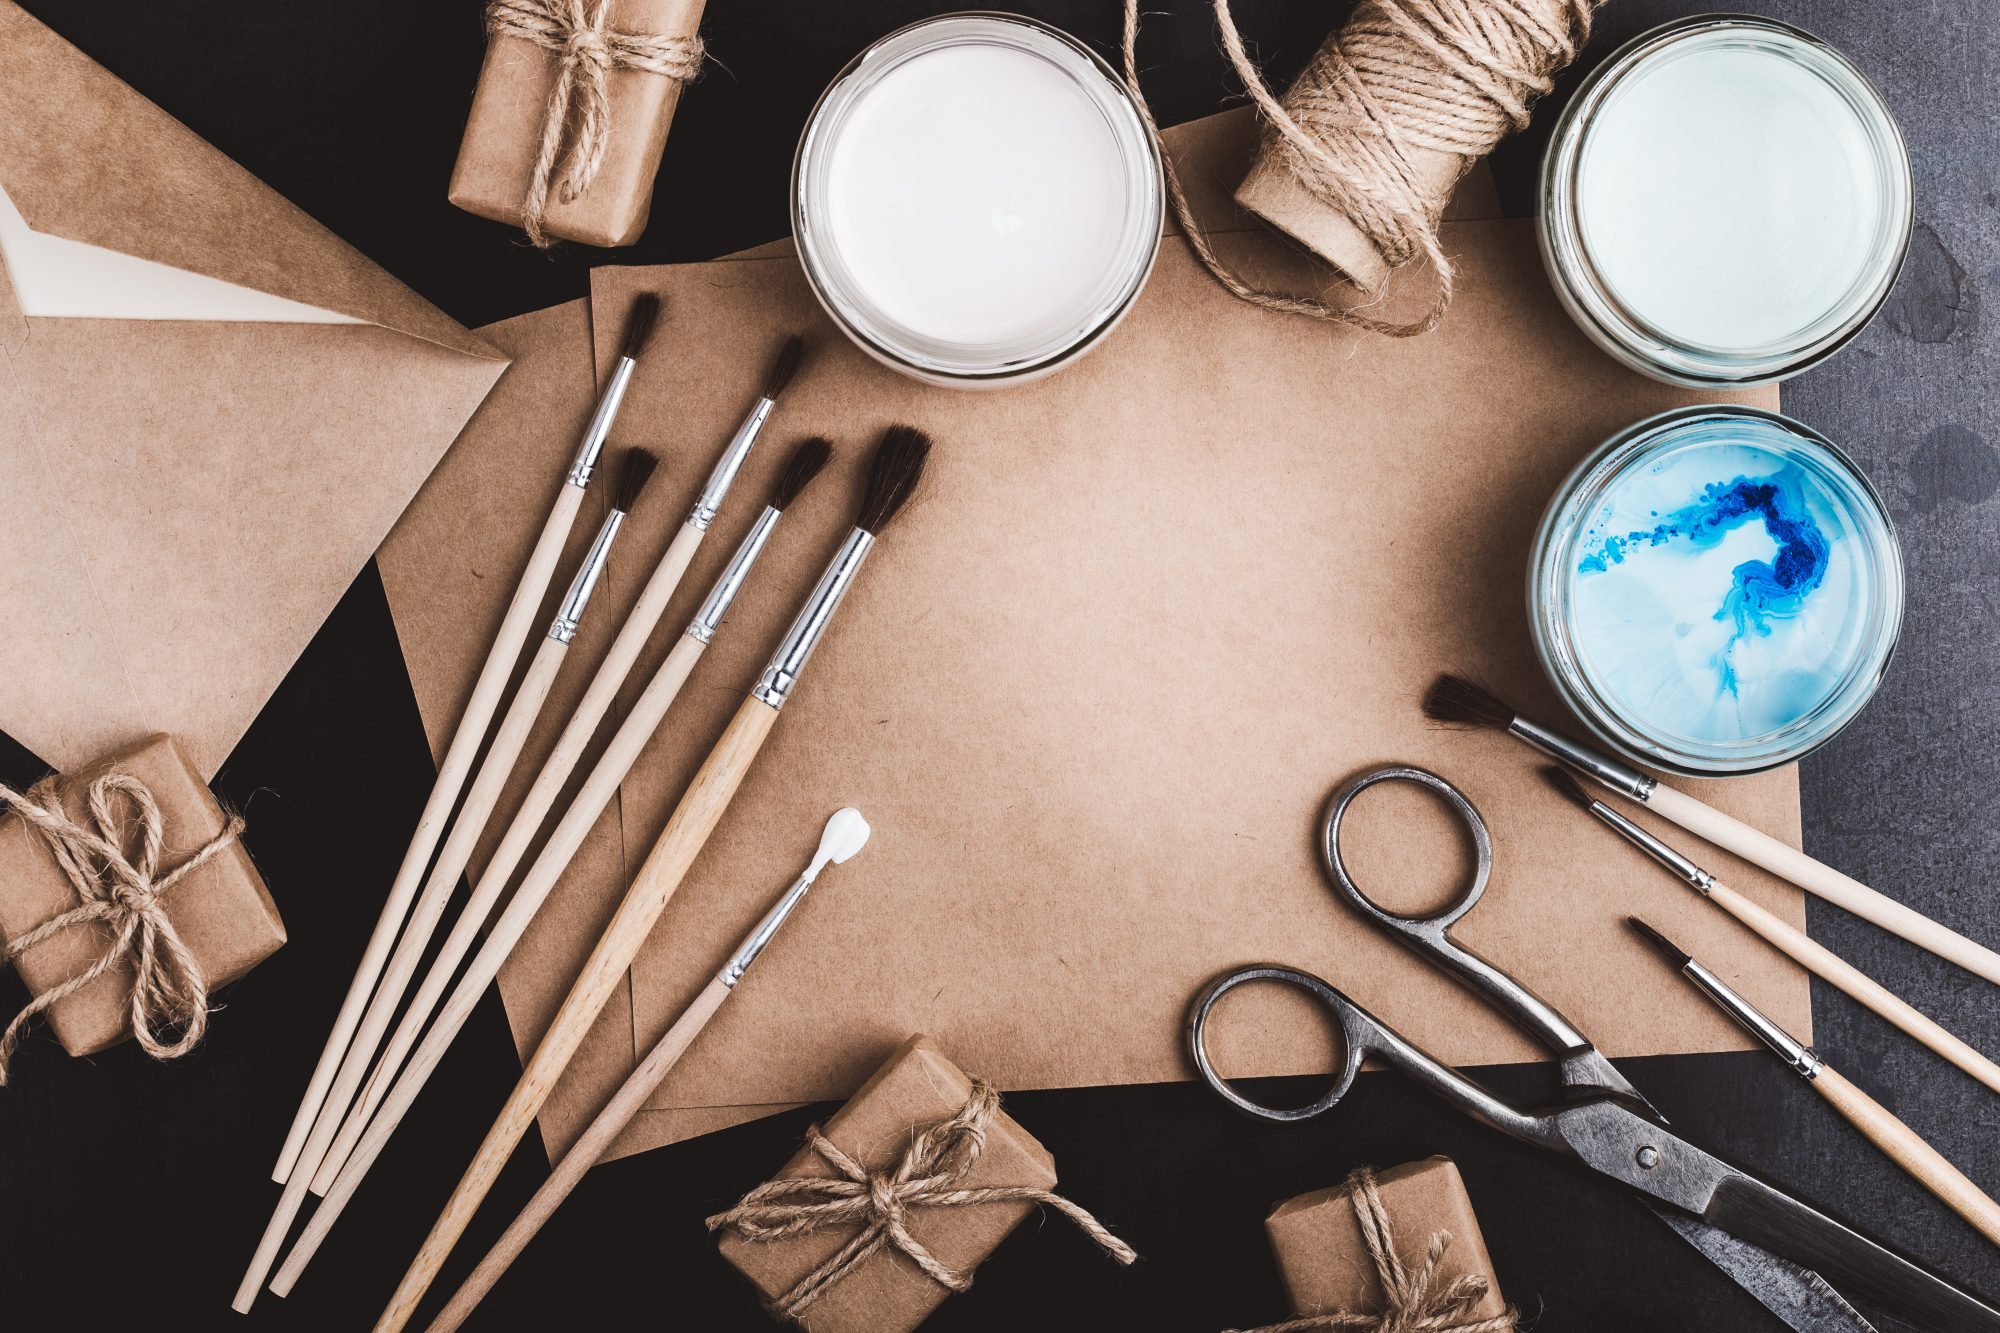 Craft Supplies on Table